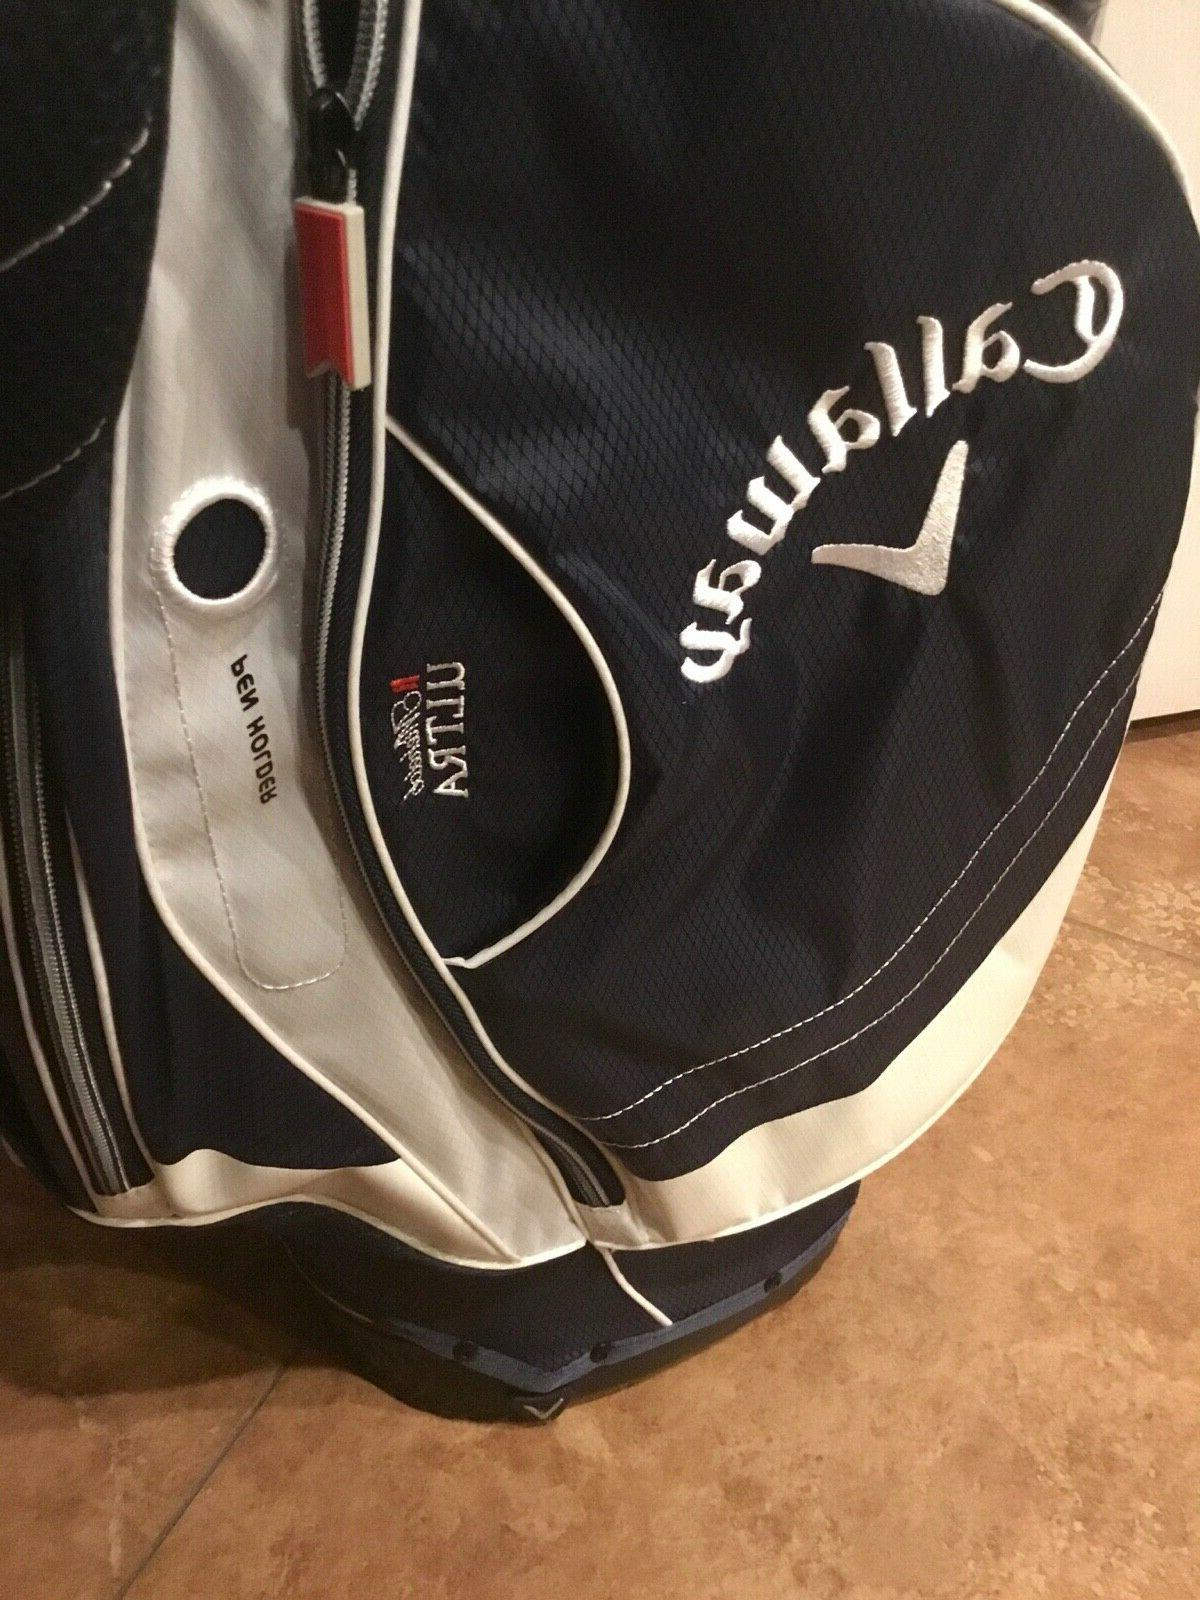 Callaway Ultra Navy and Colors